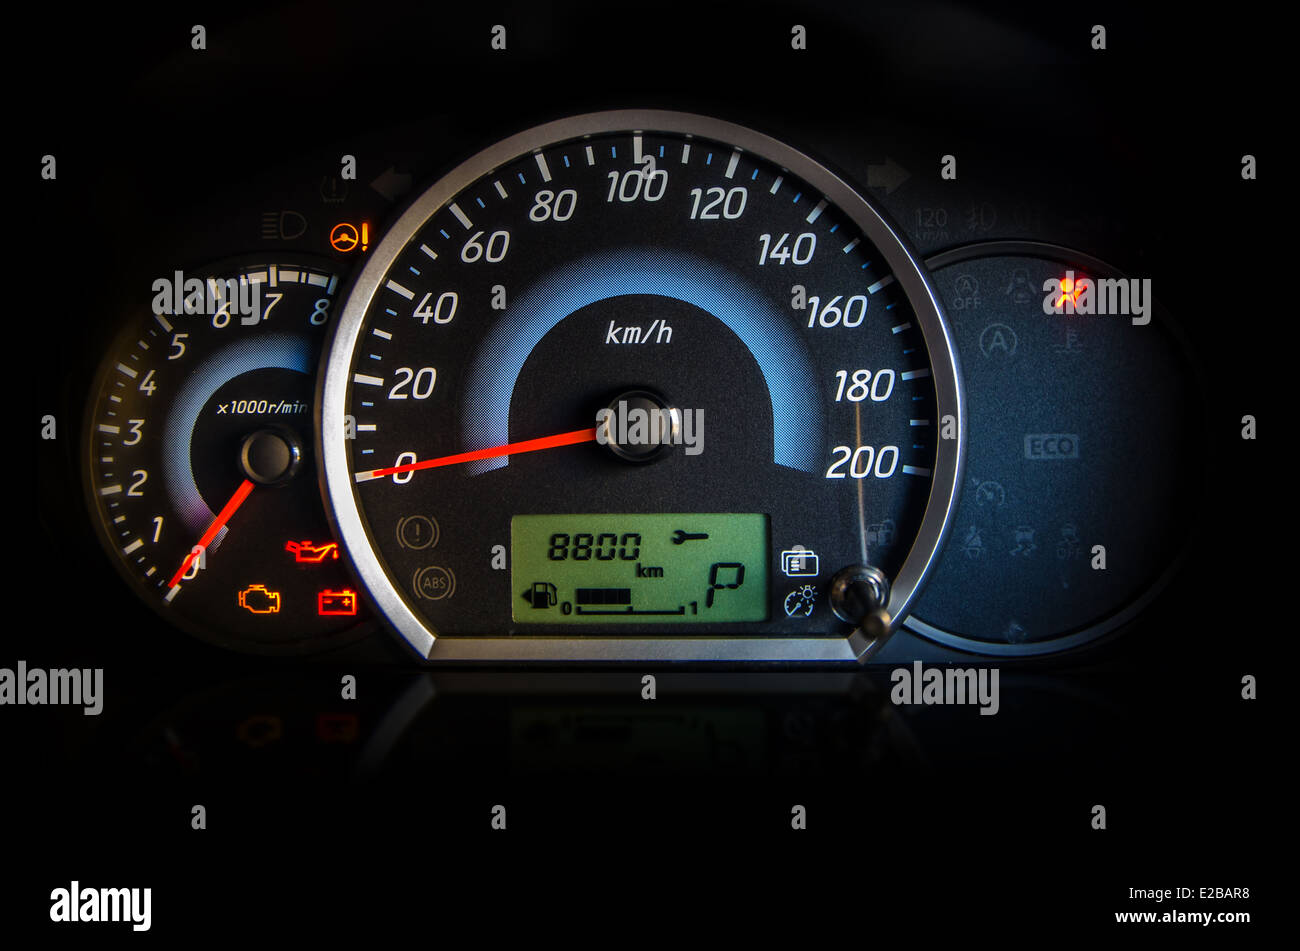 Armaturenbrett auto  Auto-Armaturenbrett-Display-Anzeige Stockfoto, Bild: 70320748 - Alamy